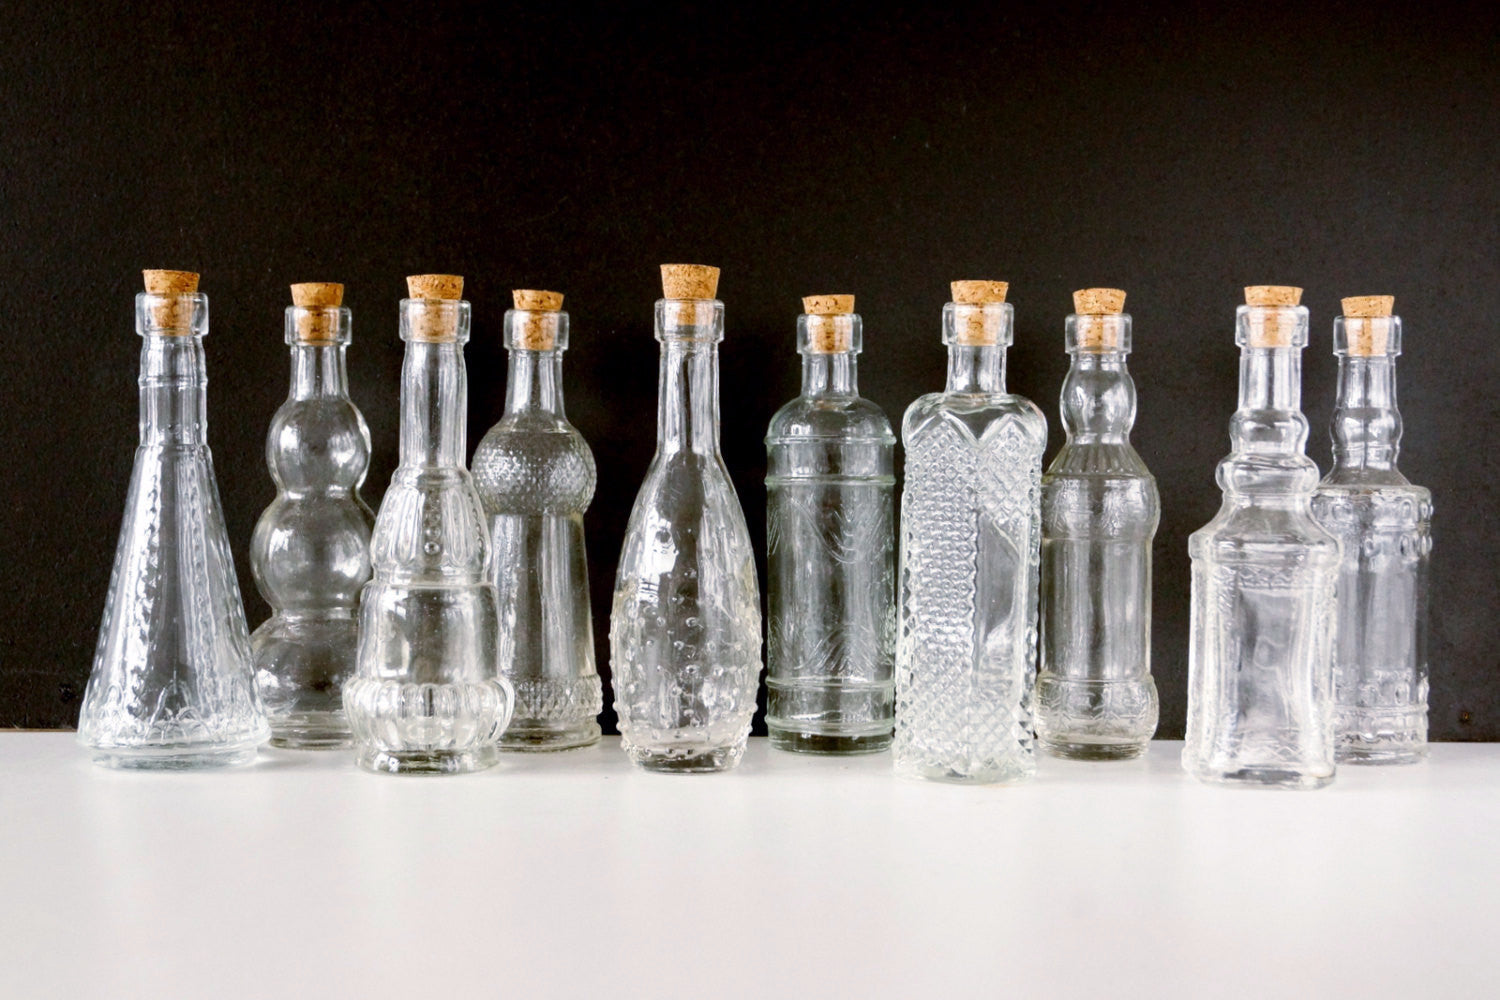 Decorative Clear Glass Bottles With Corks 5 Tall Set Of 10 Thirdshiftvintage Com